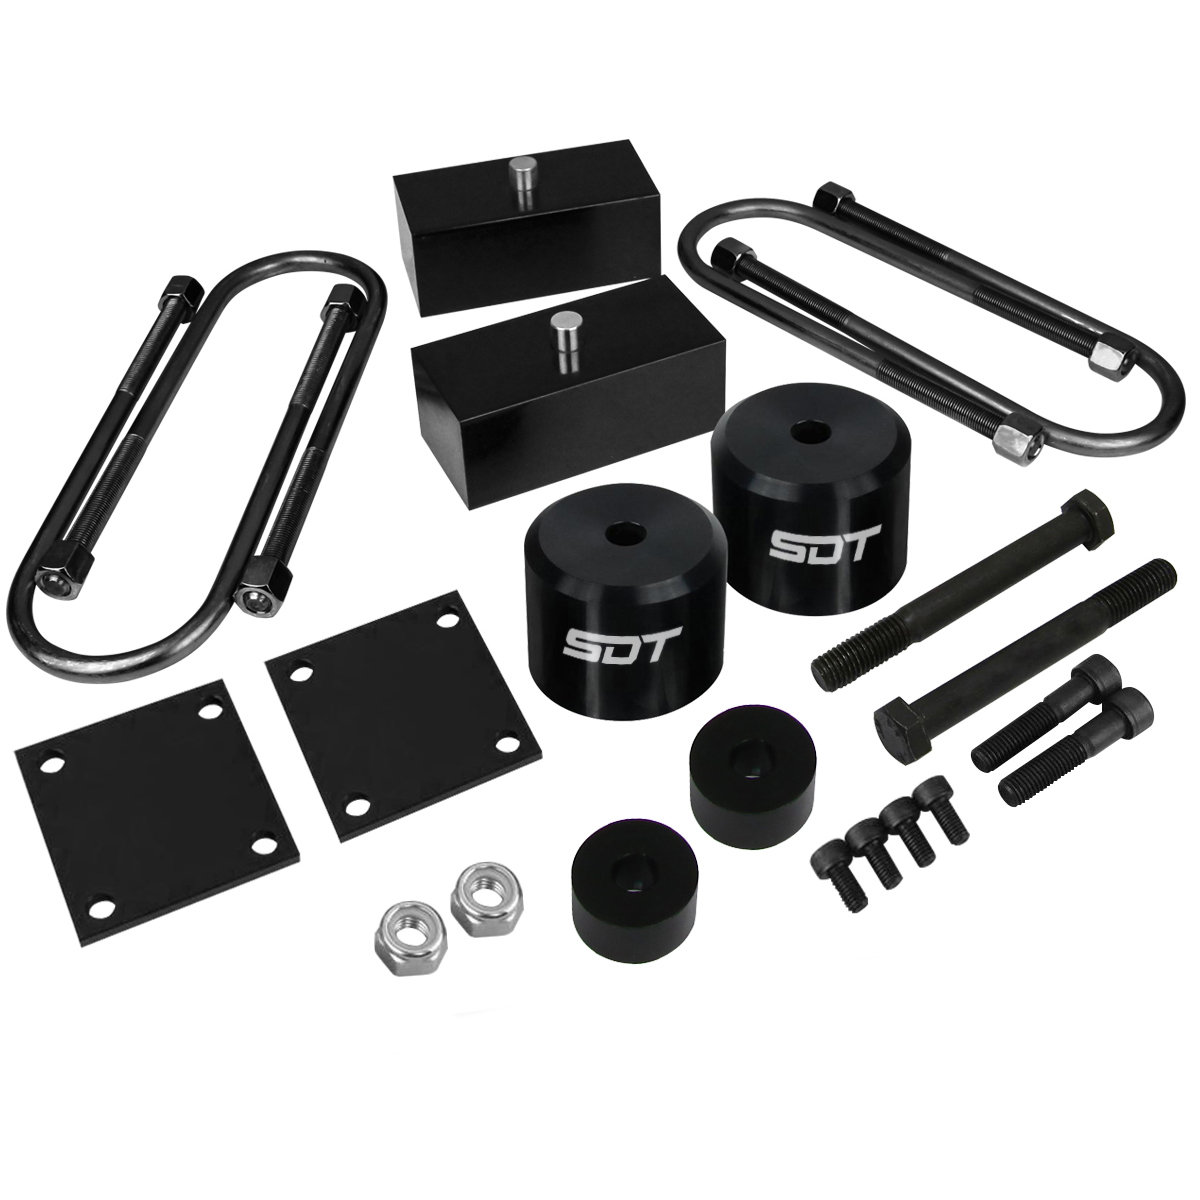 """99-04 Ford F250 F350 Super Duty 3/"""" Front 3/"""" Rear Lift Leveling Kit 4x4 4wd"""